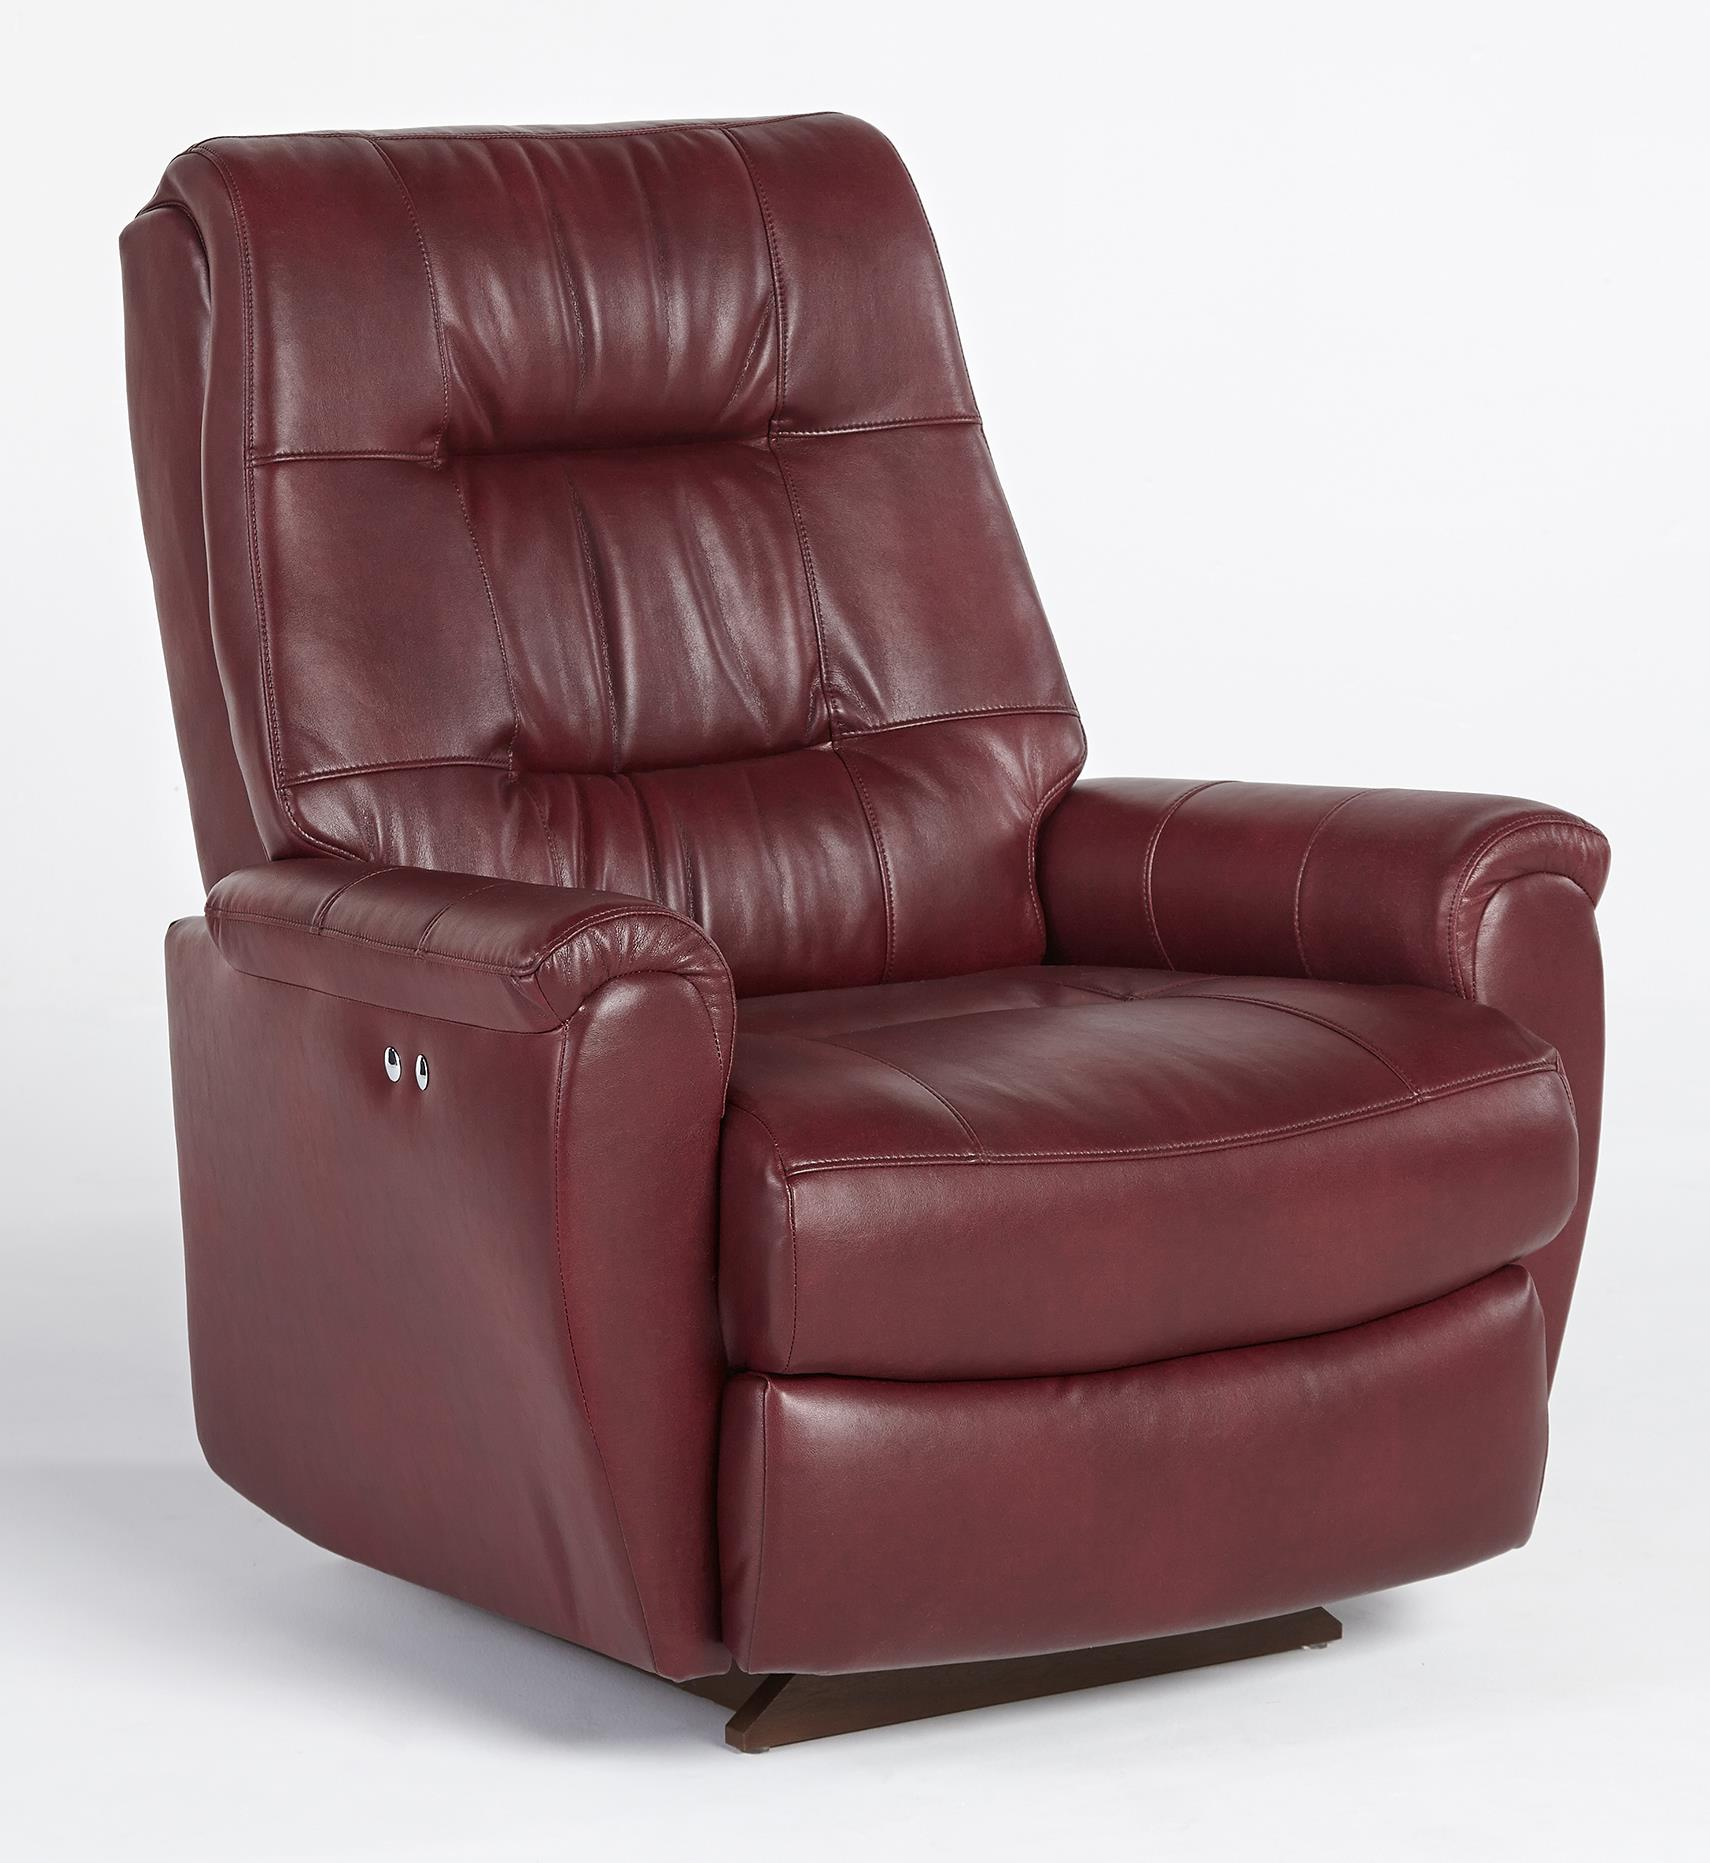 Recliners Petite Felicia Swivel Glider Recliner With